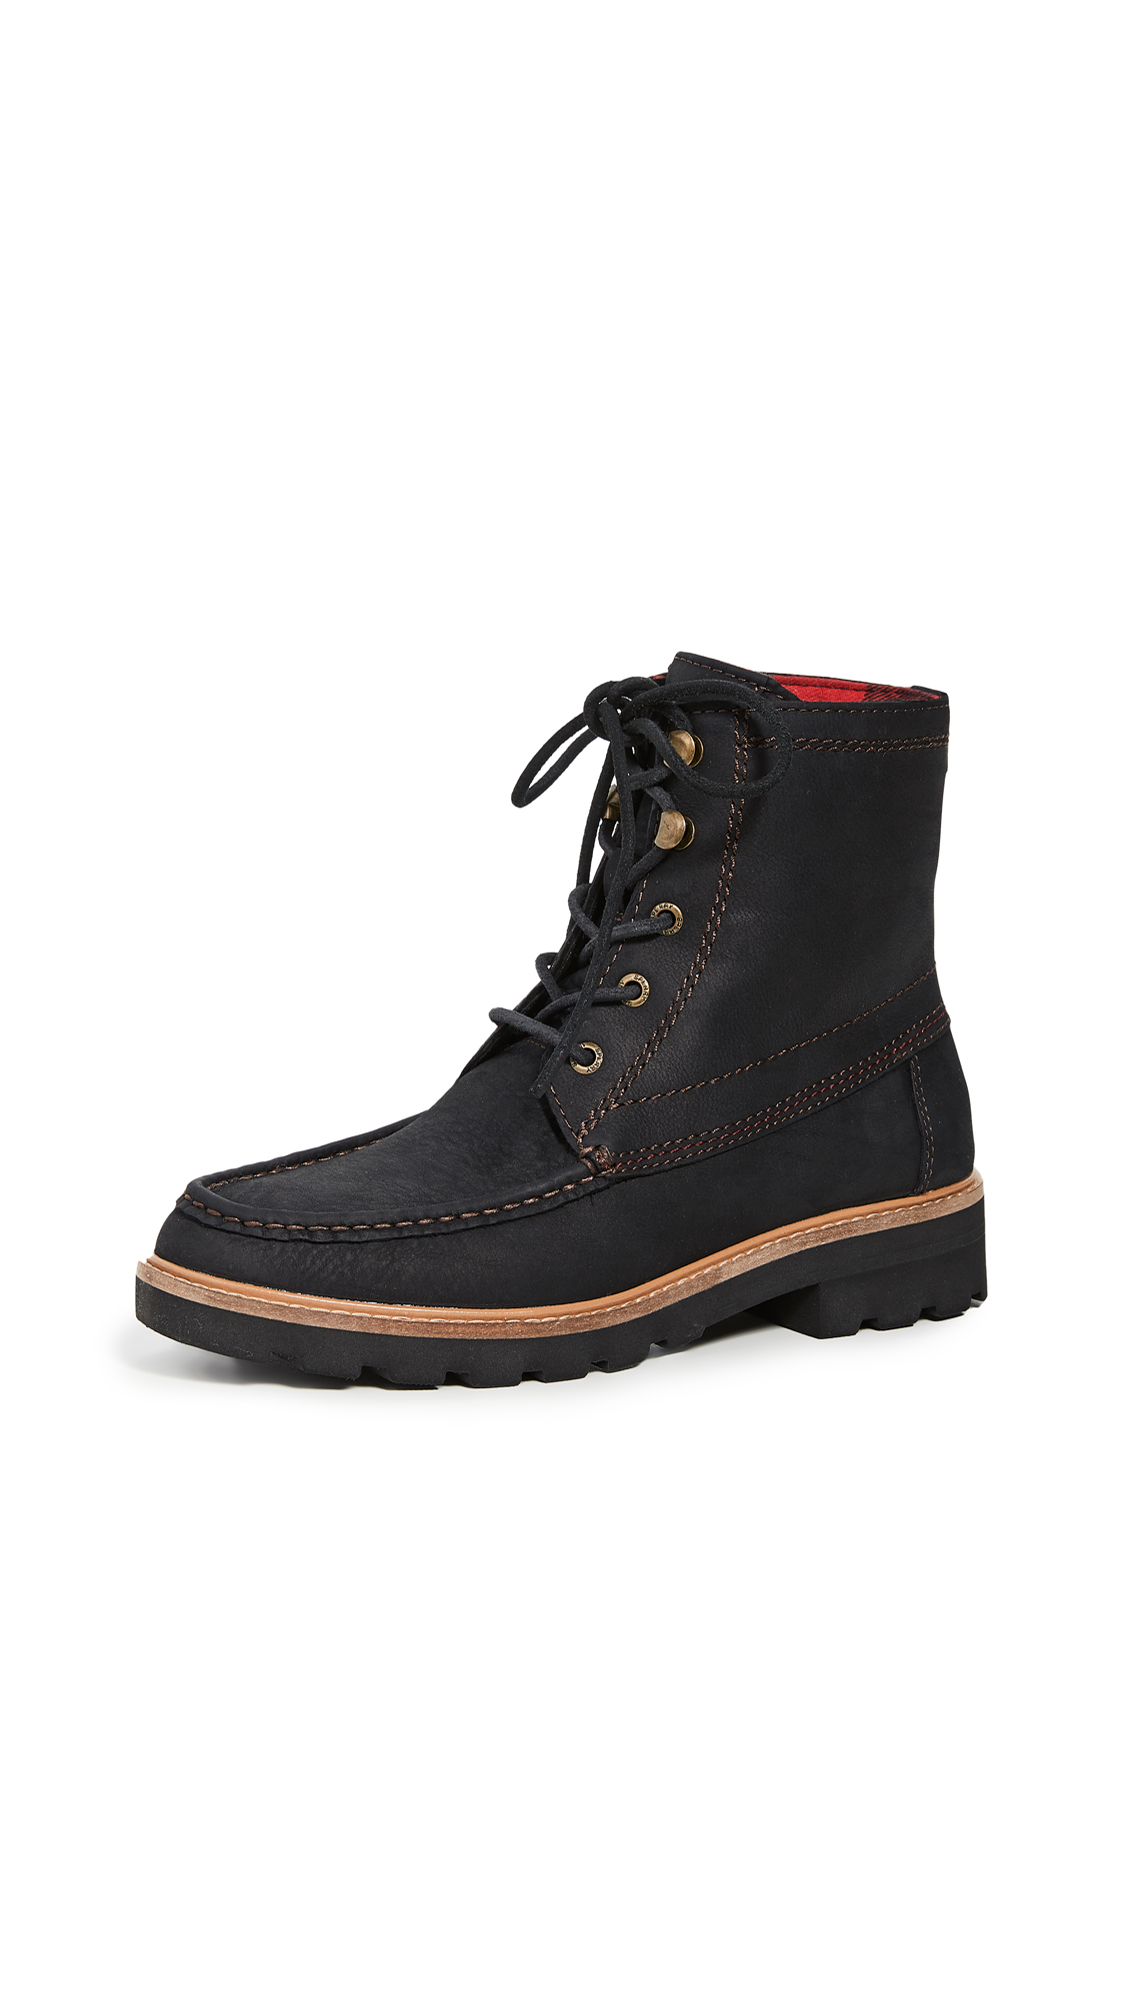 Sperry Authentic Original Lug Boots - 60% Off Sale